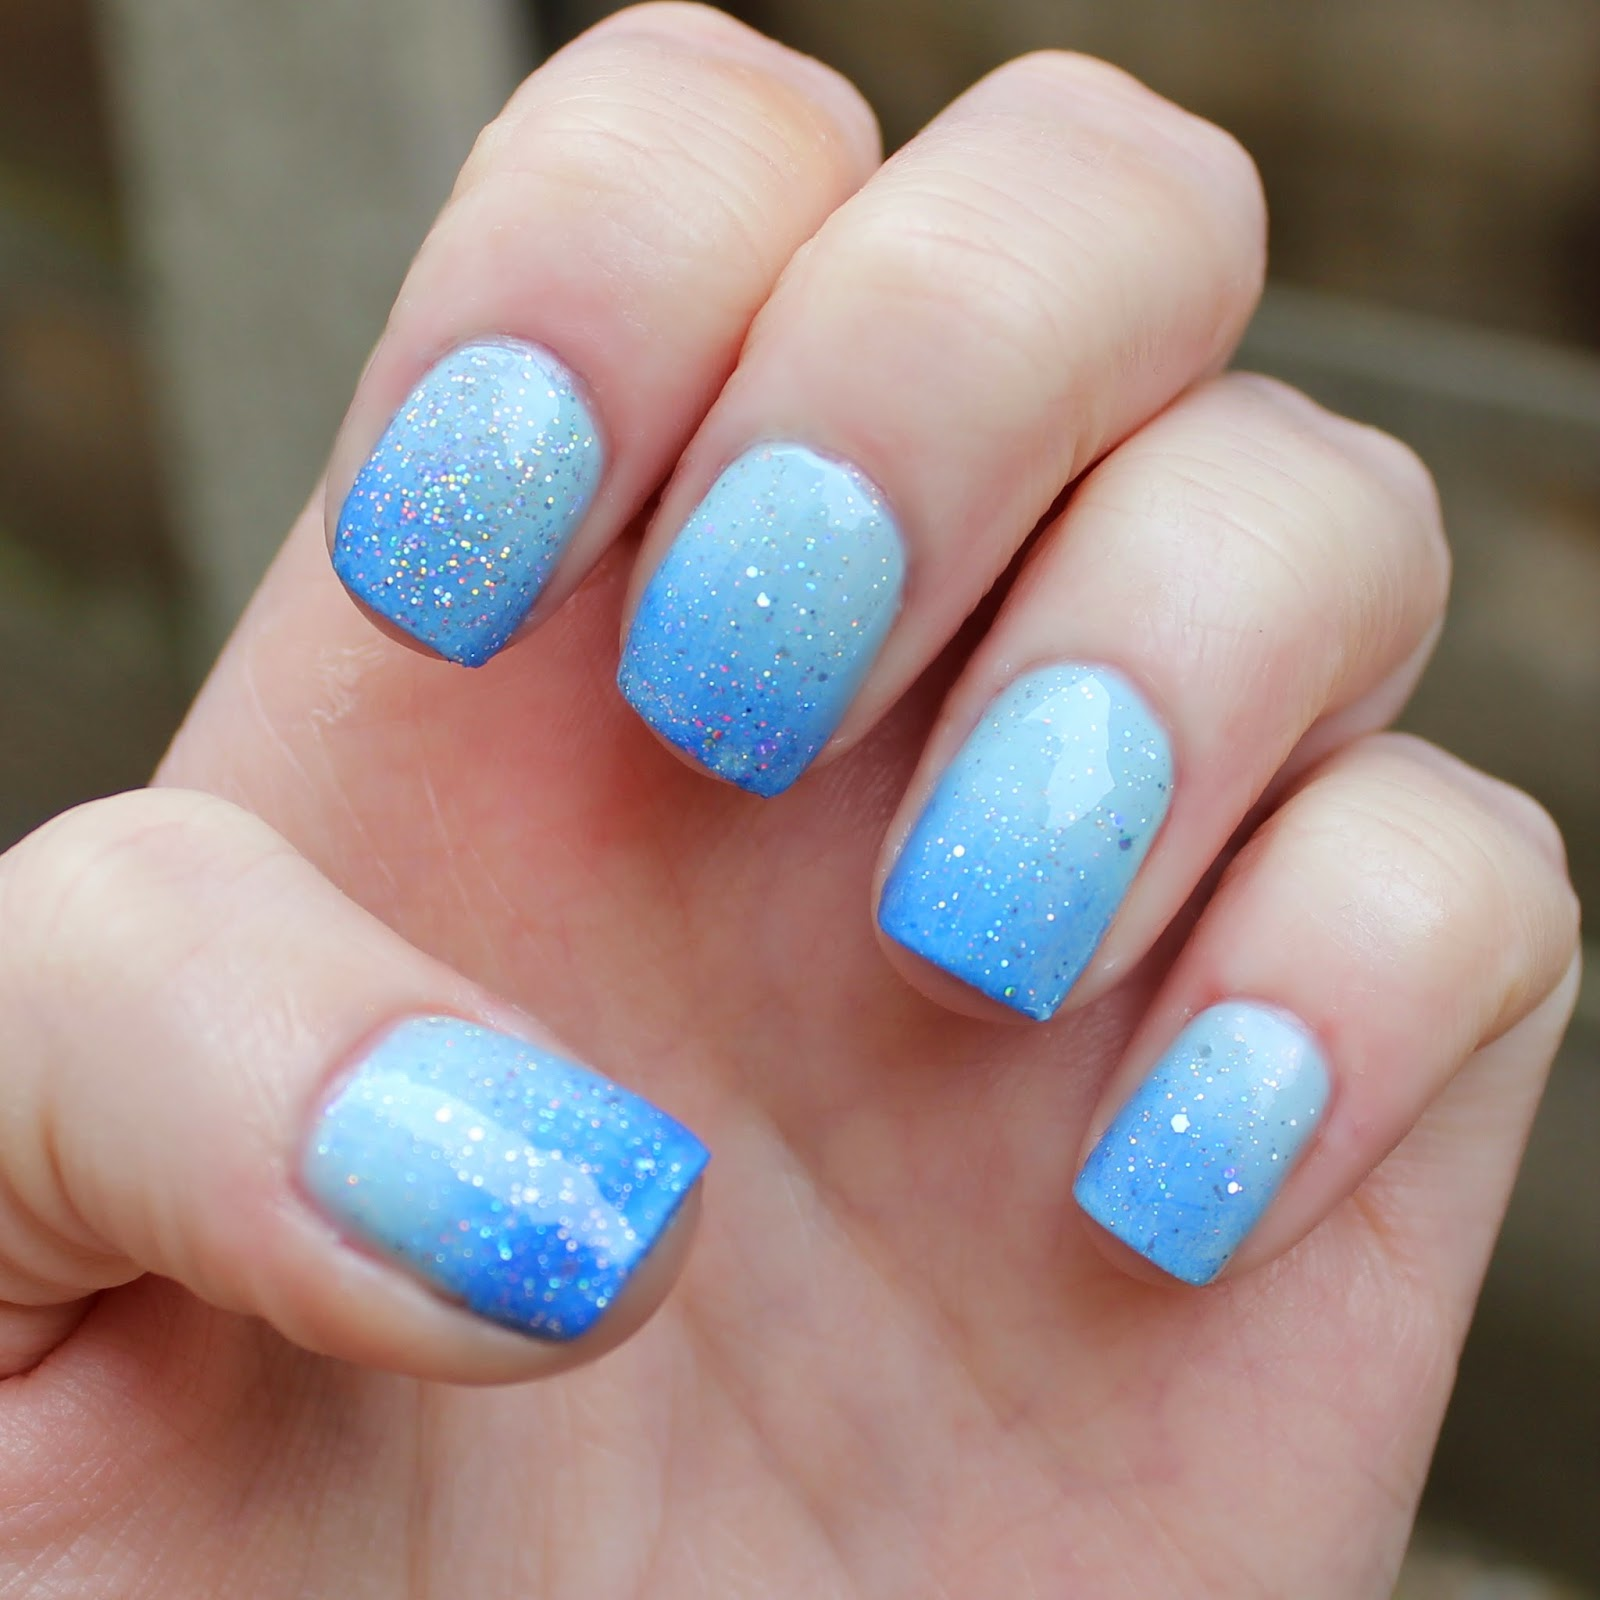 Dahlia Nails: A Dream Is A Wish Your Heart Makes